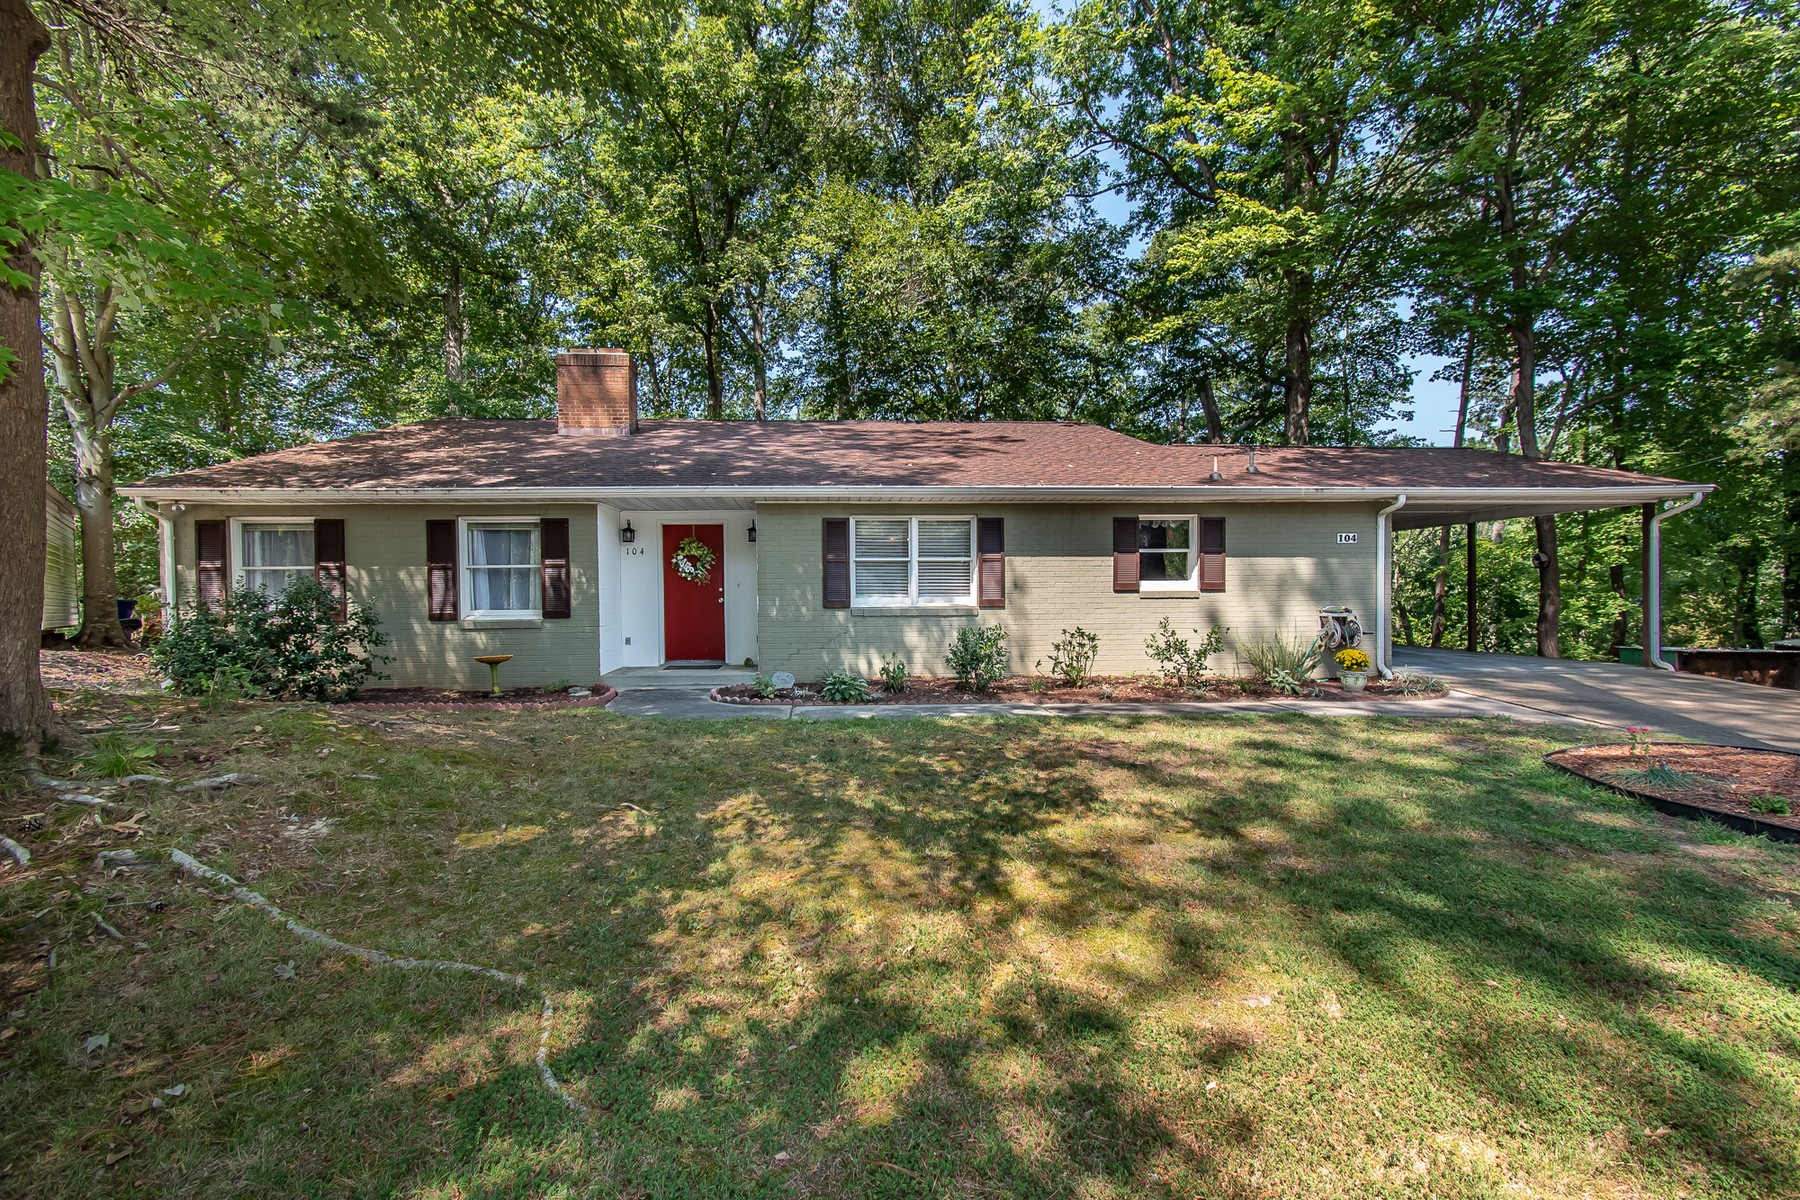 Single Family Homes for Active at 104 Rexford Drive 104 W. Rexford Drive Newport News, Virginia 23608 United States